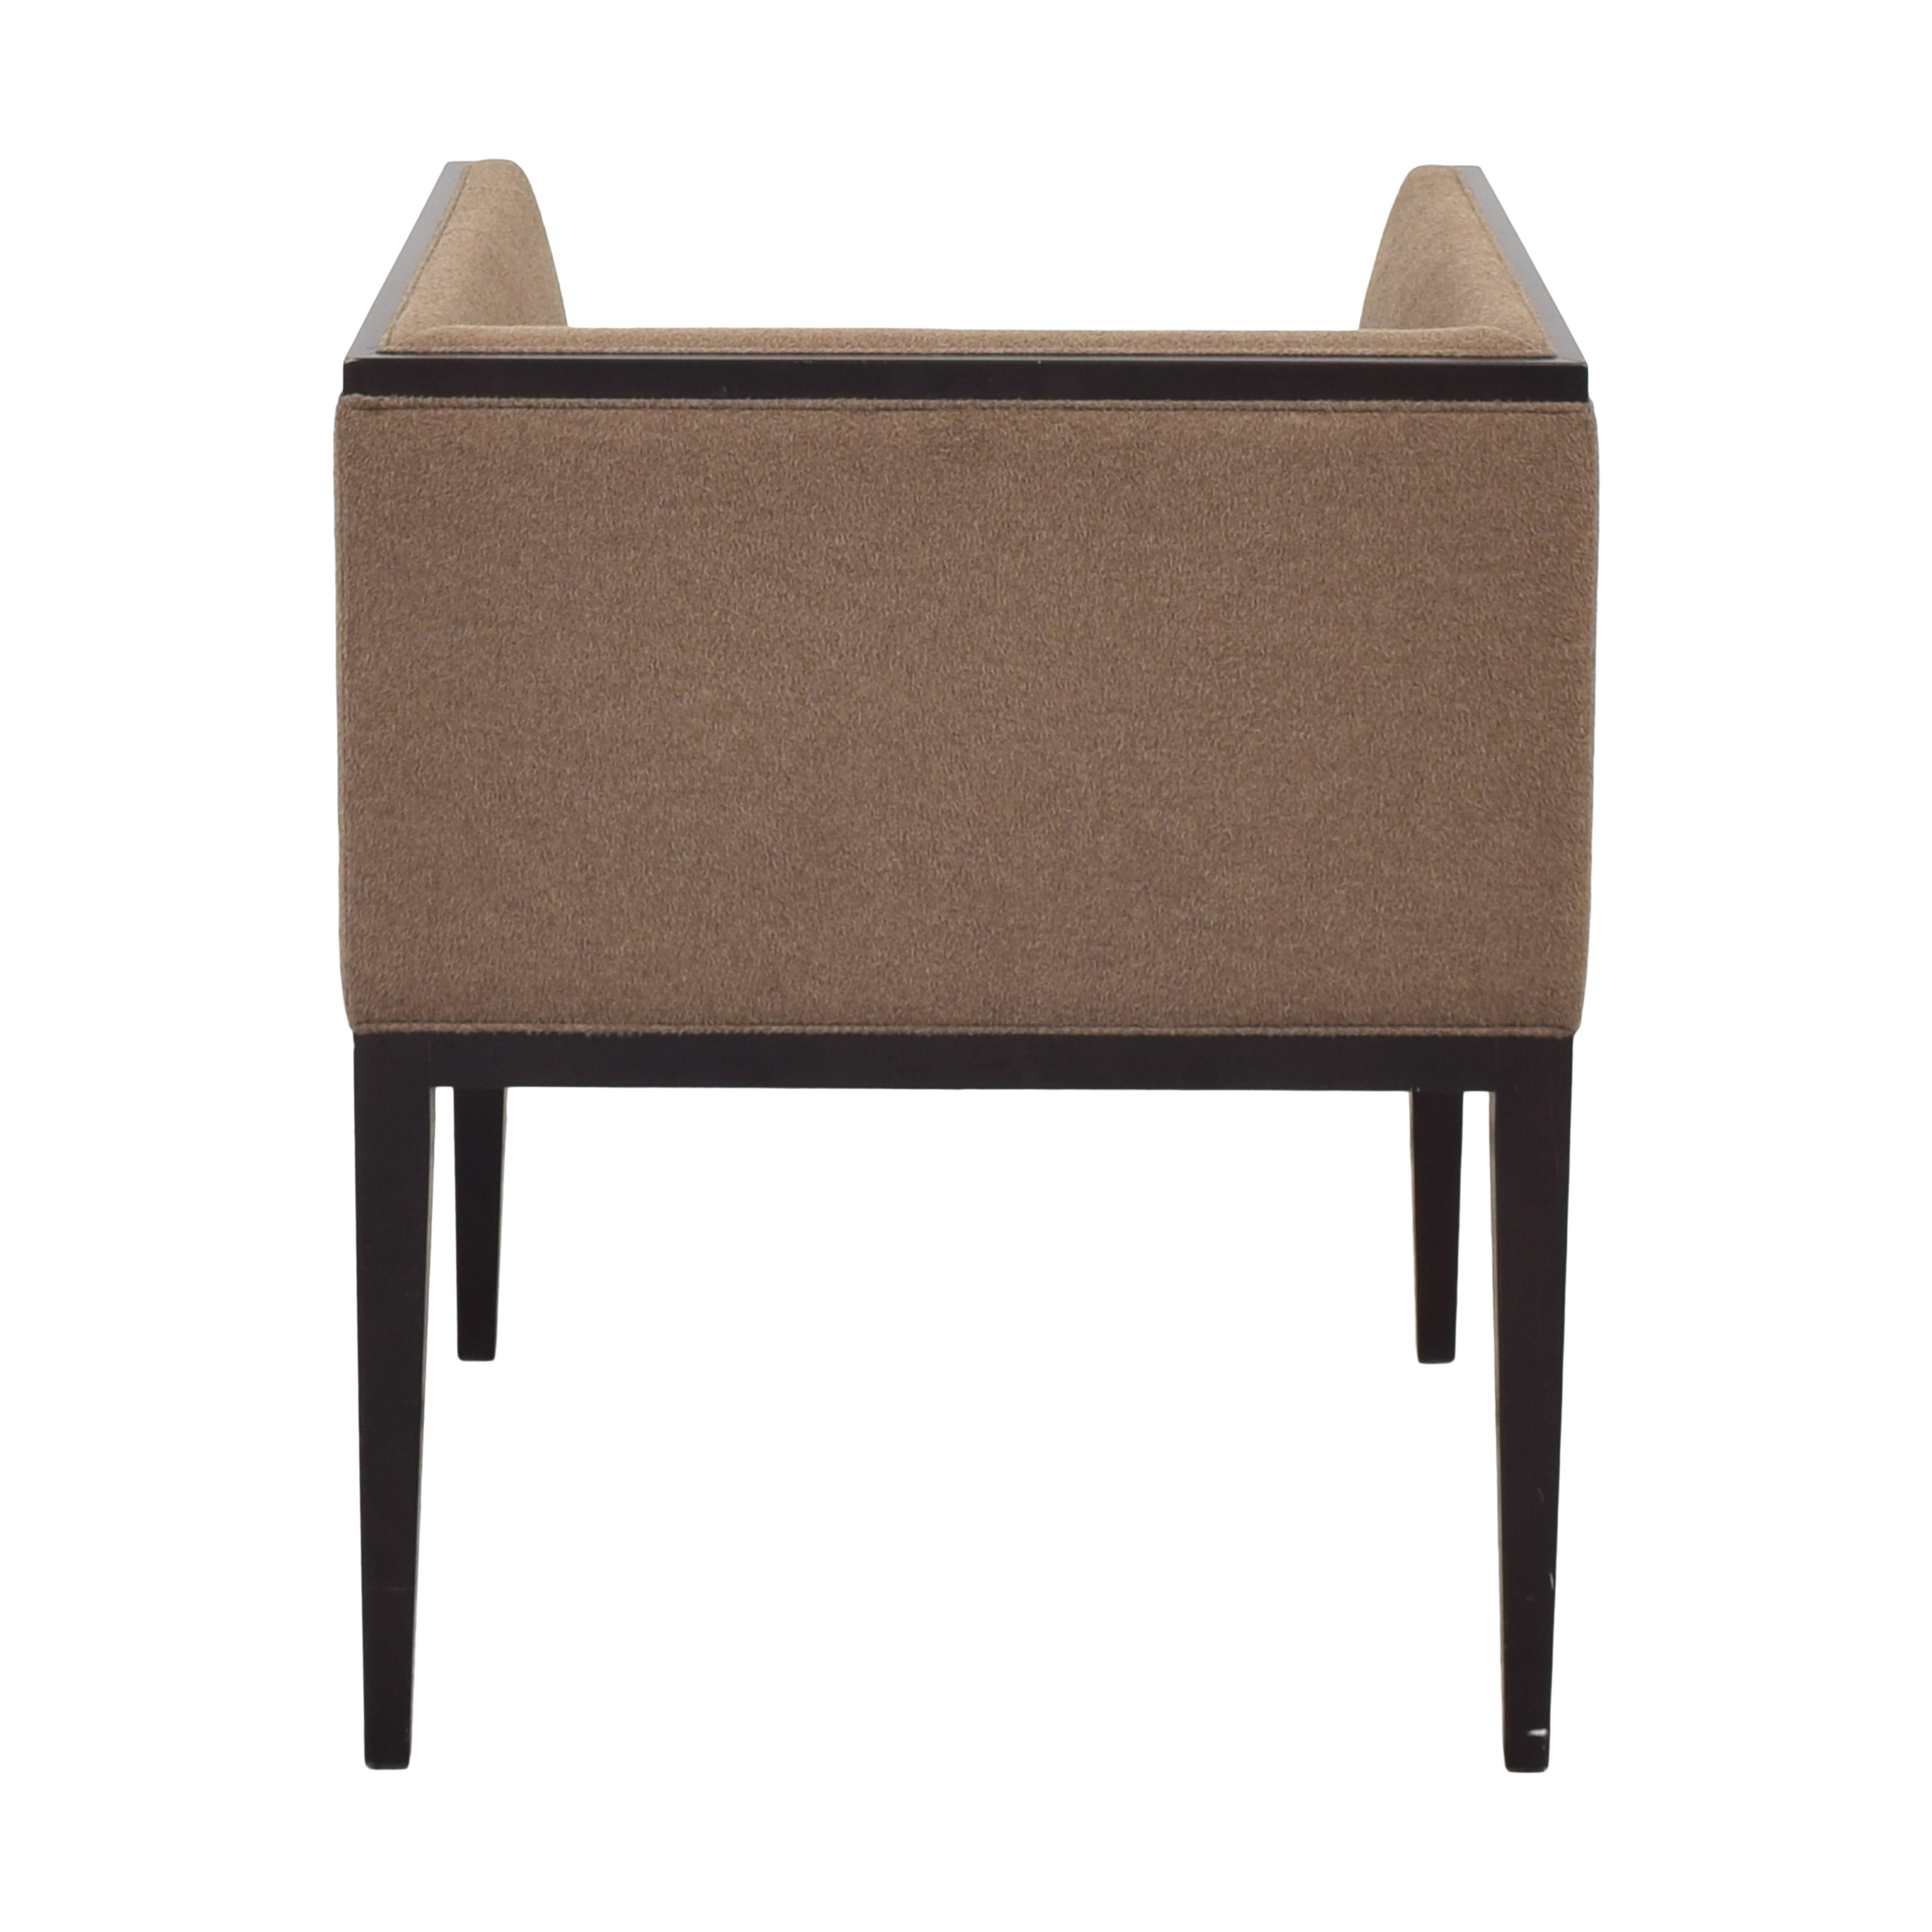 Hudson Furniture & Bedding Hudson Furniture & Bedding Contemporary Accent Chair